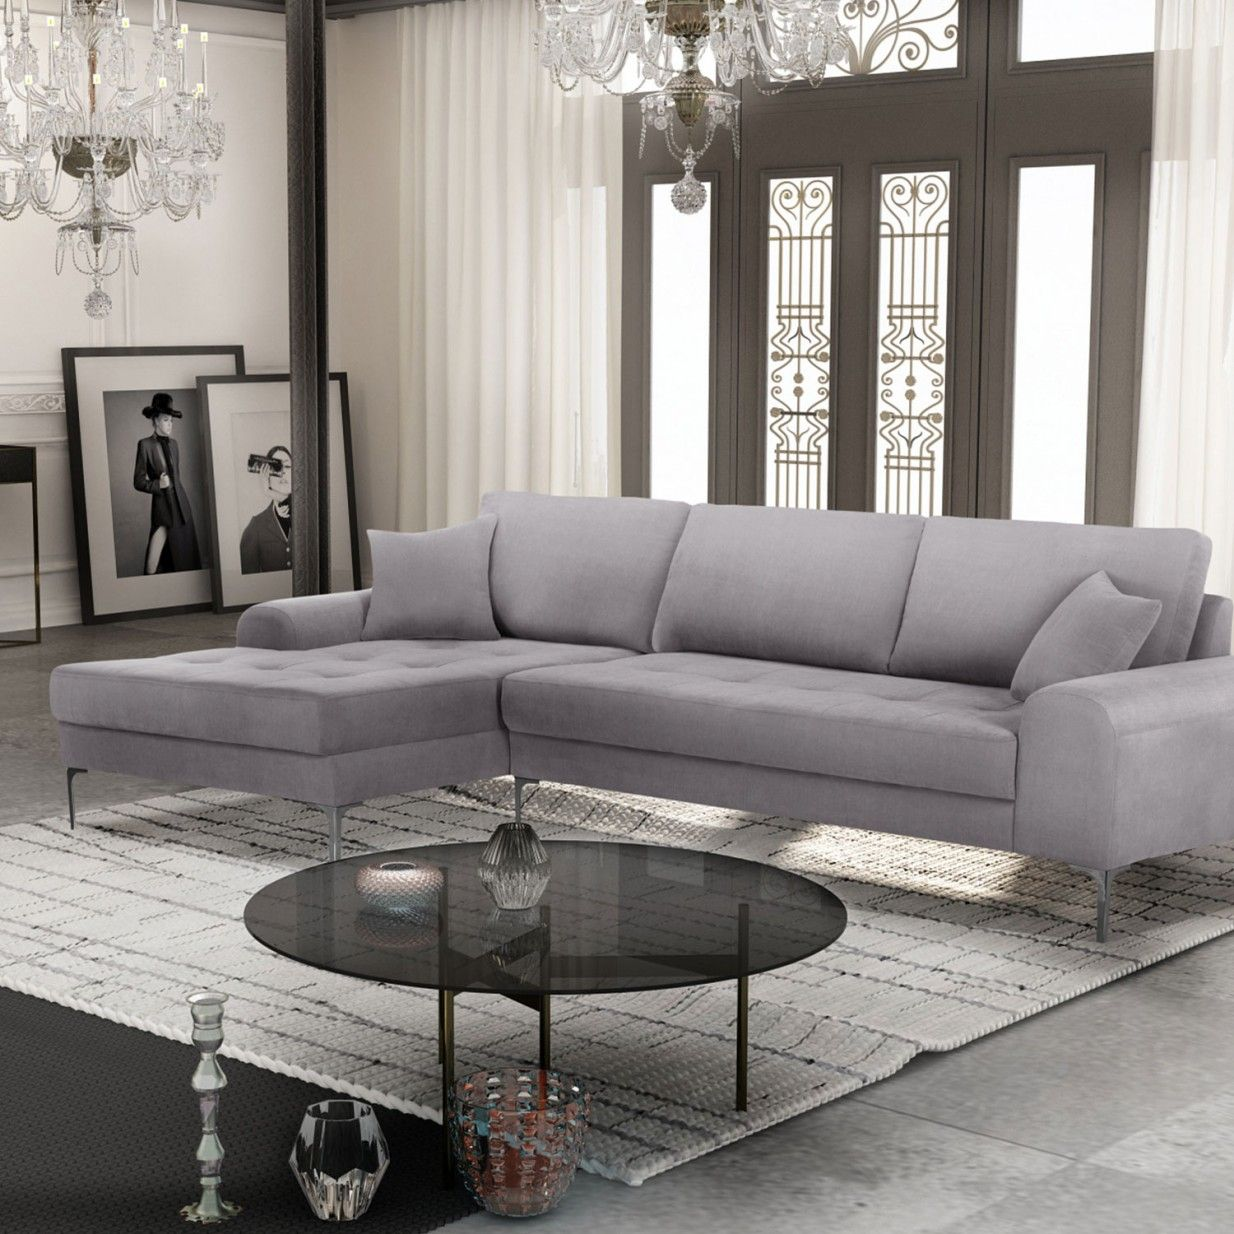 left corner sofa light grey corinne cobson ideas for the house ideas for the house. Black Bedroom Furniture Sets. Home Design Ideas